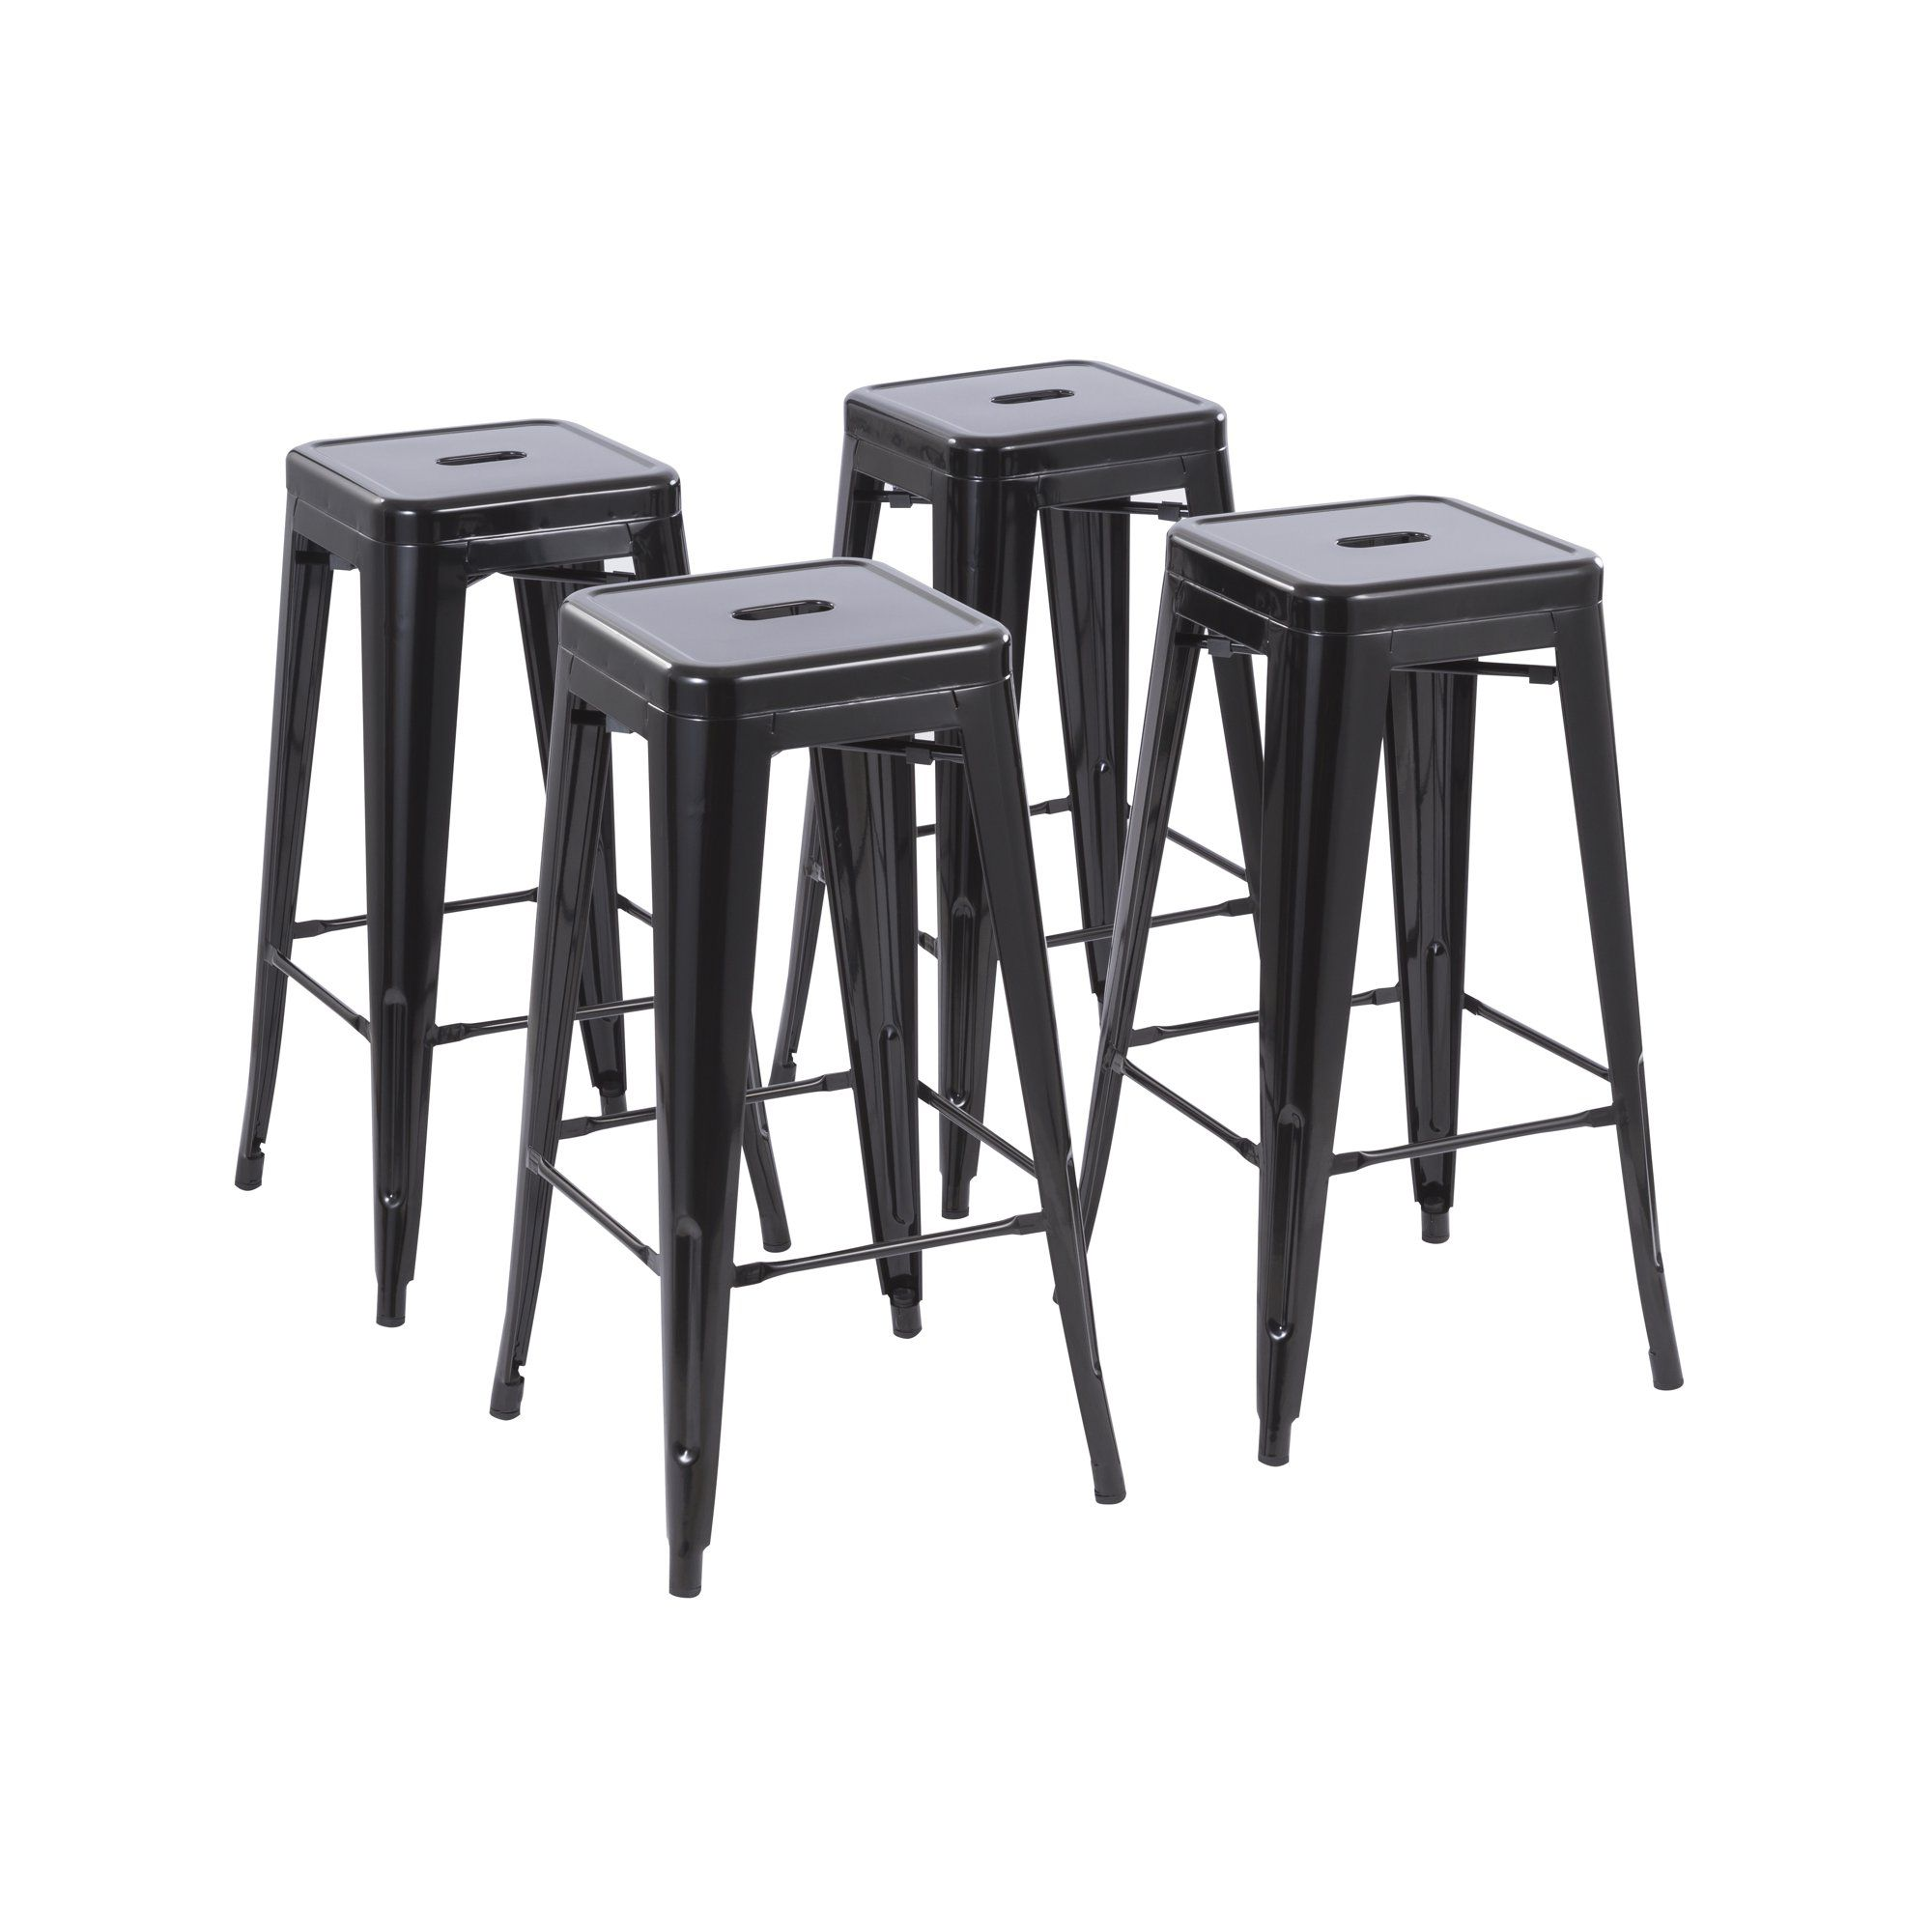 Howard 30 Backless And Armless Metal Bar Stool Set Of 4 Multiple Colors Gunmetal Black Silver Red Wa In 2021 Metal Bar Stools Metal Counter Stools Bar Stools Bar stool sets of 4